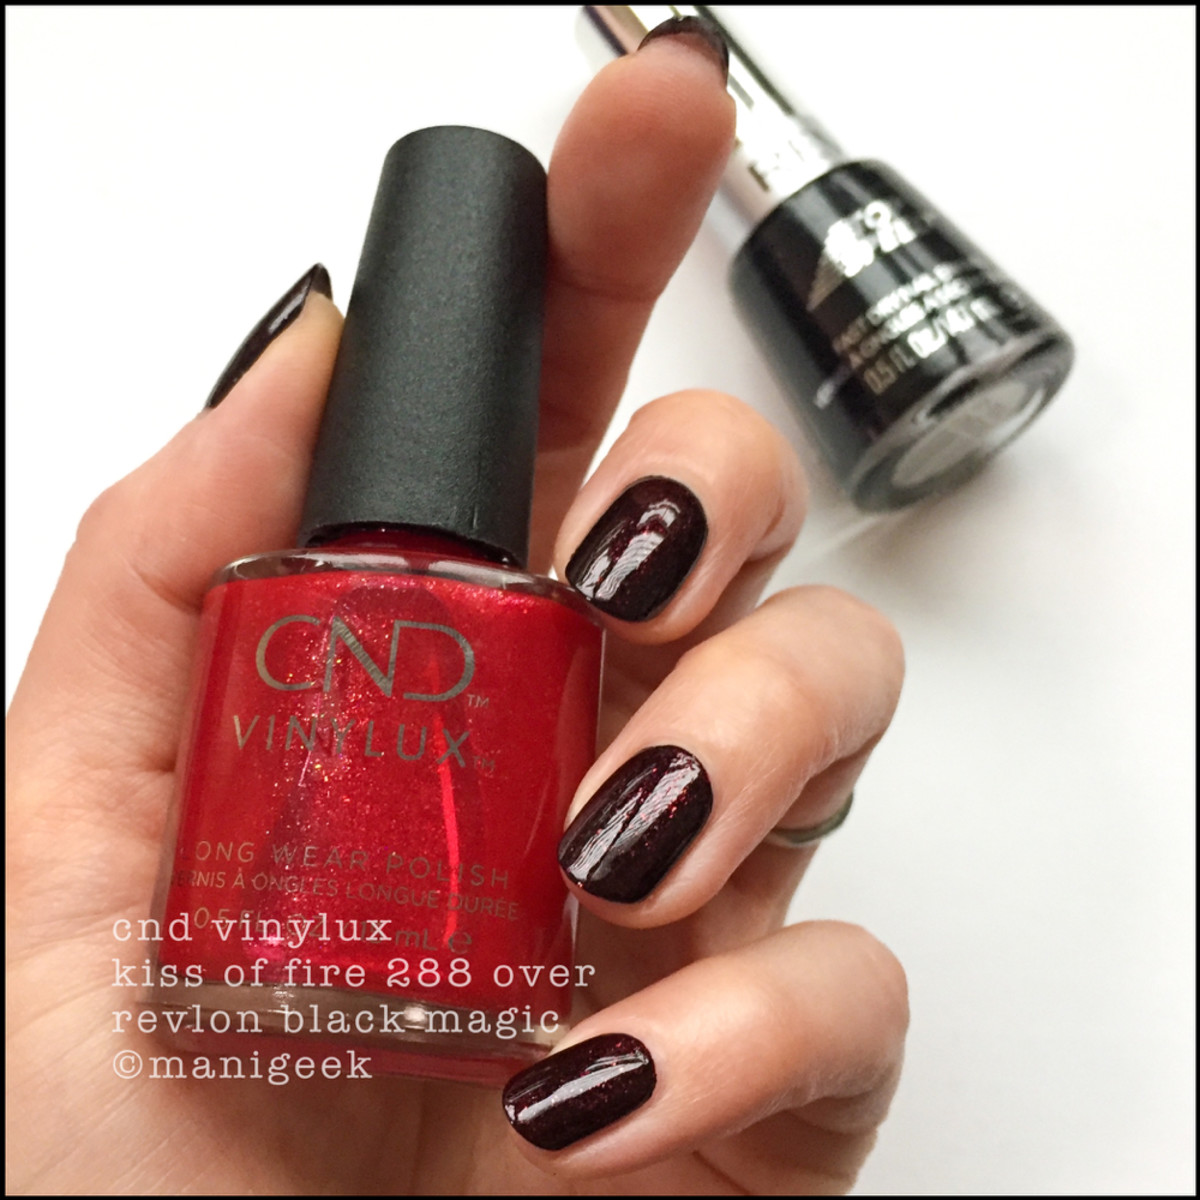 CND Kiss of Fire over Revlon Black Magic - CND Night Moves Collection Swatches Review